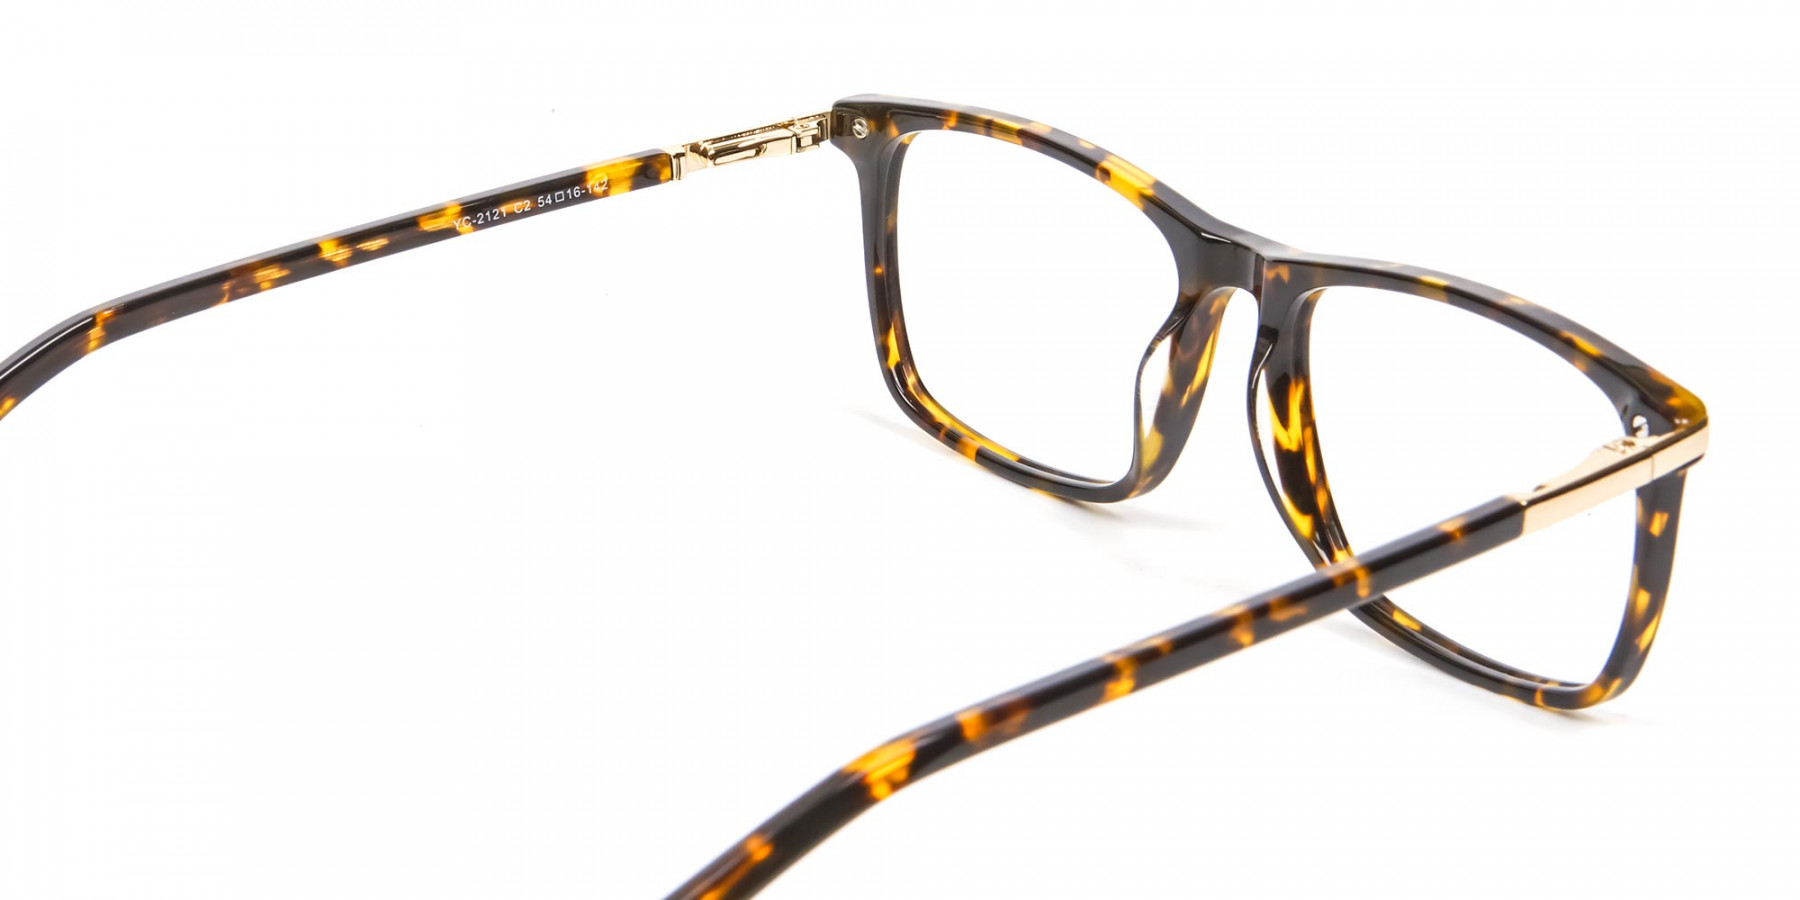 Tortoiseshell Glasses with Gold Hinge - 1